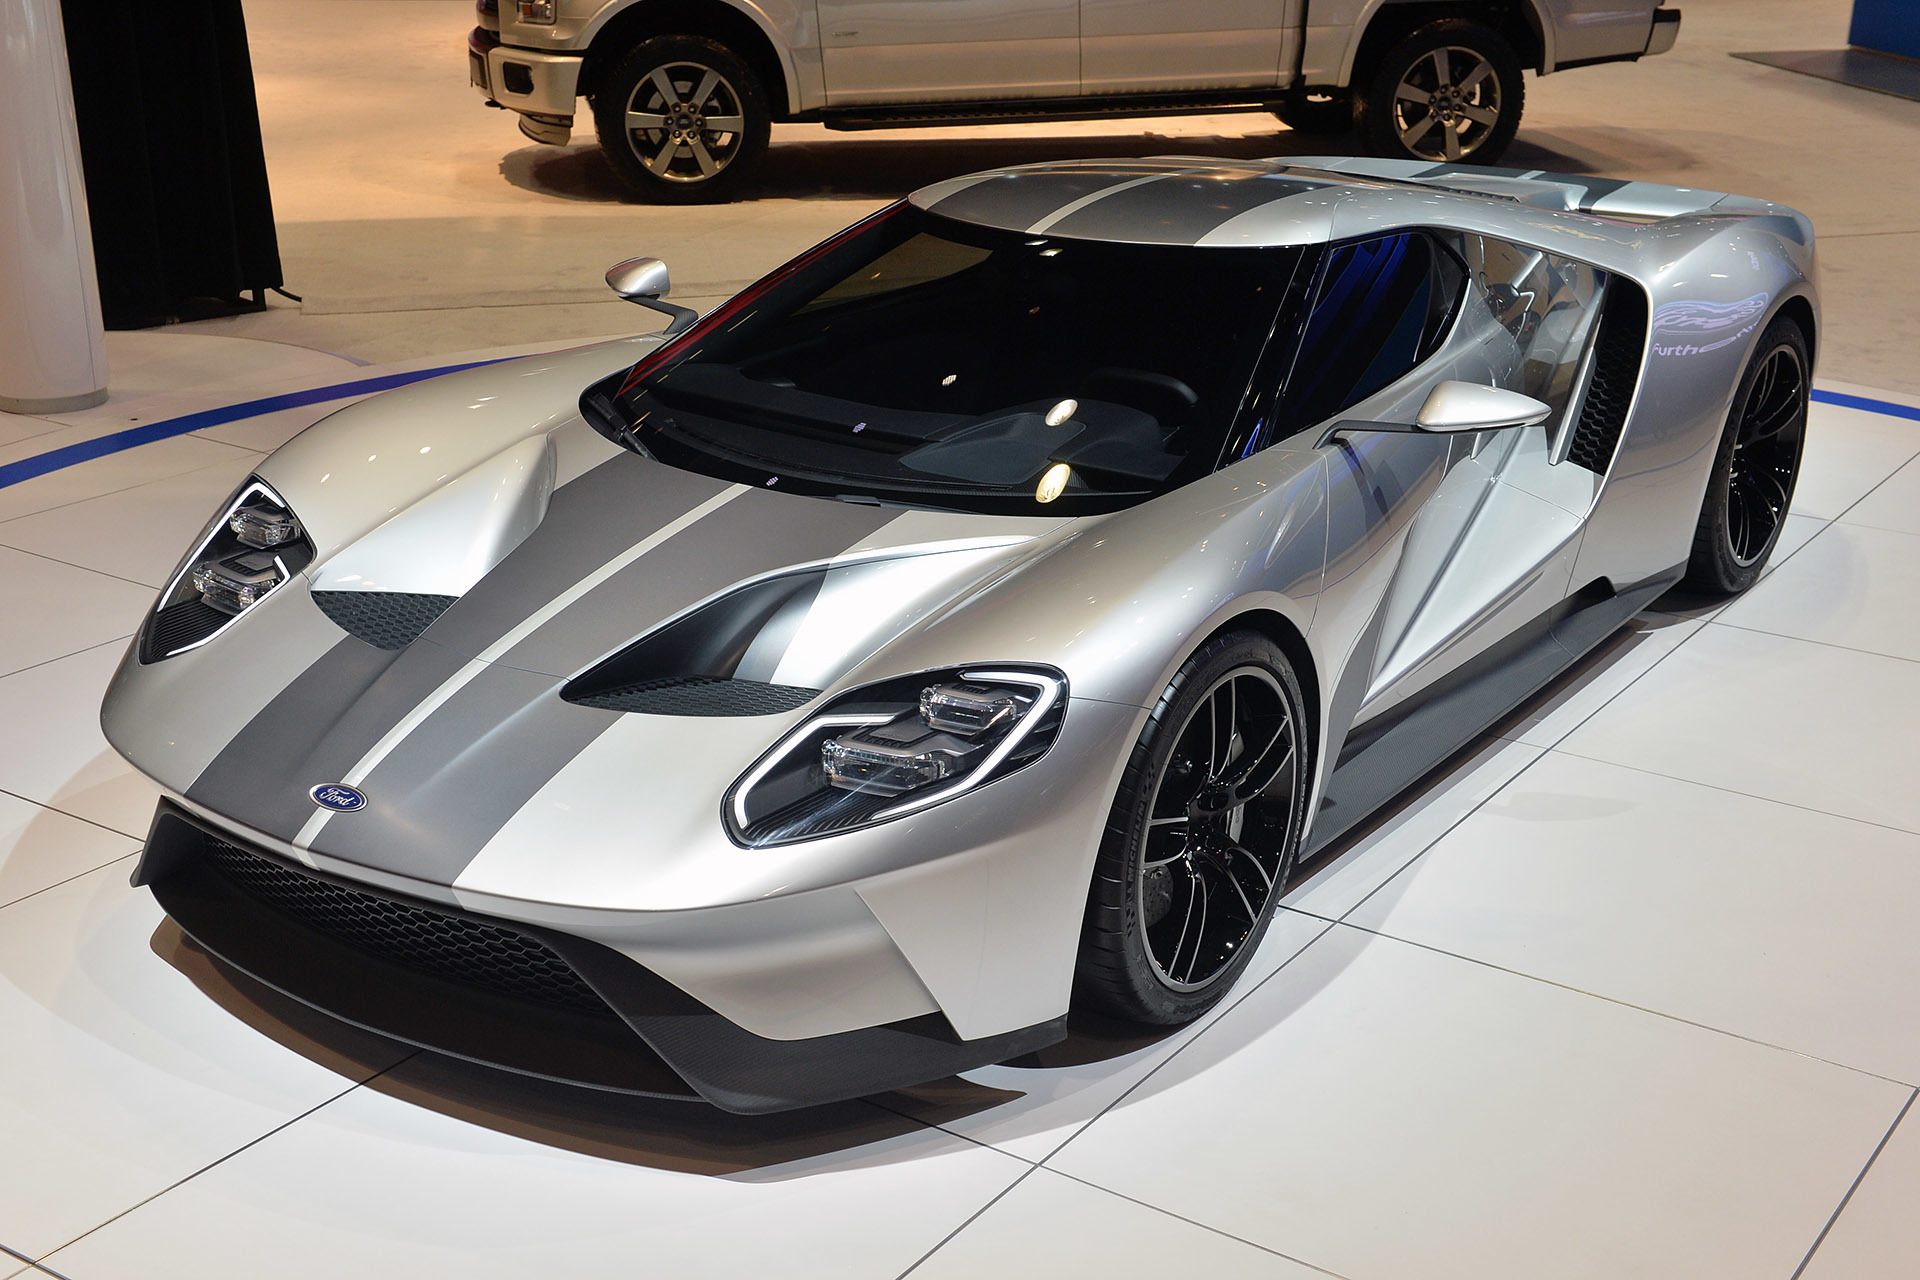 2017 Ford GT Chicago 2015 Photo Gallery   Autoblog 1920x1280